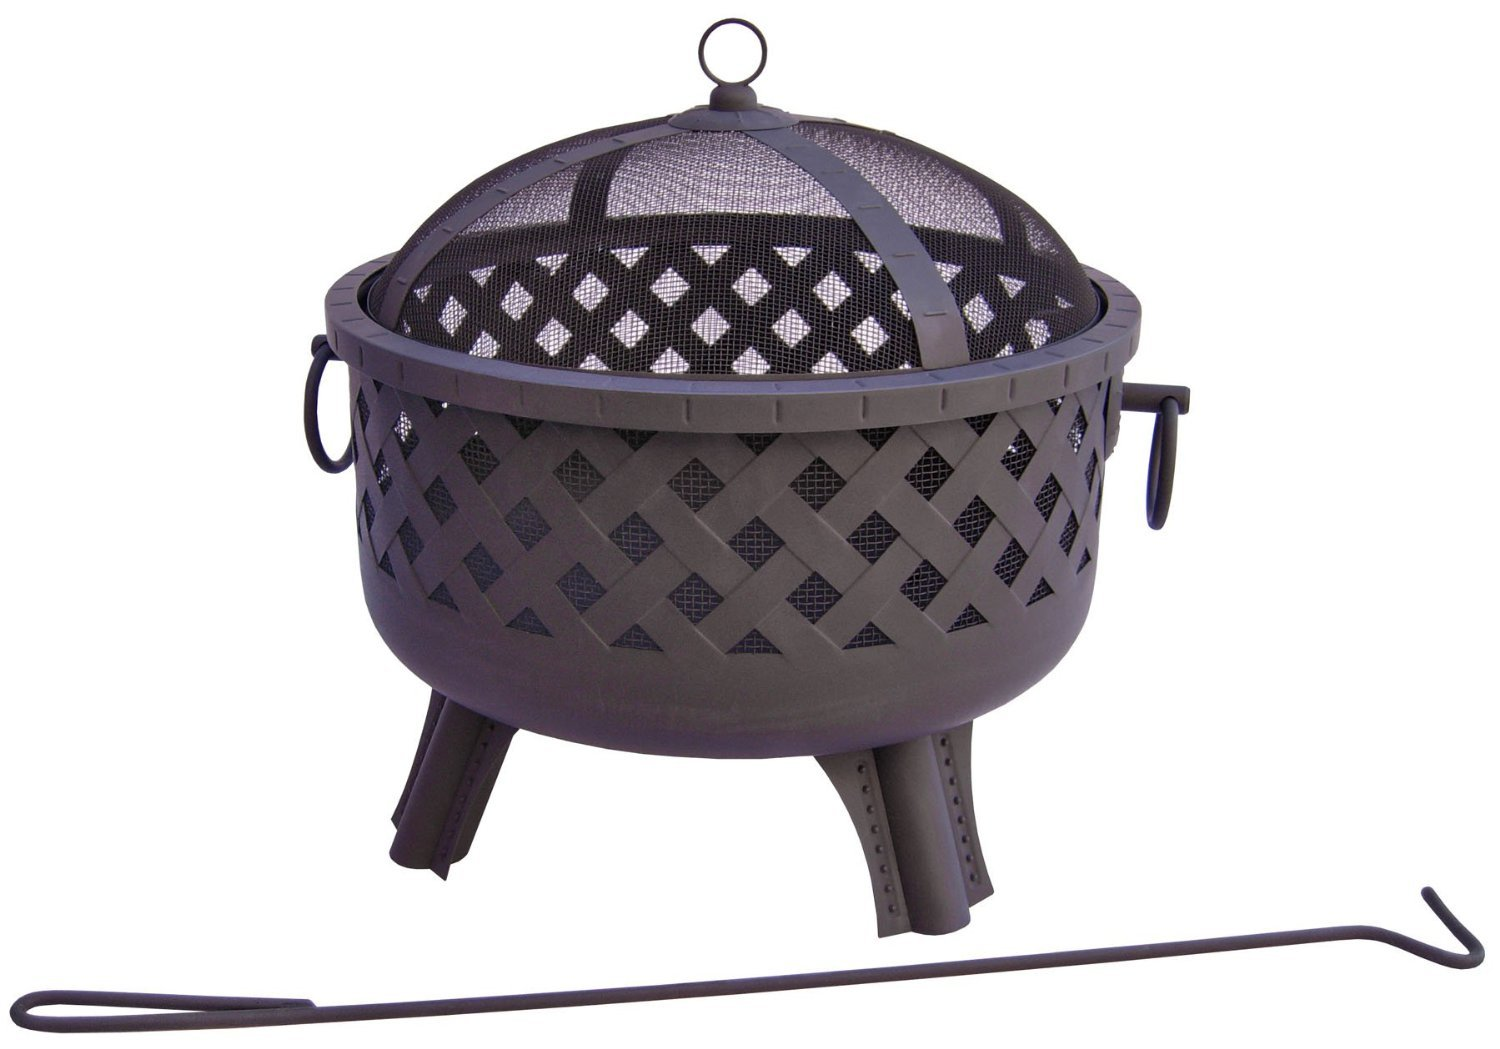 Landmann 26374 23-1/2-Inch Baton Rouge Garden Lights Fire Pit